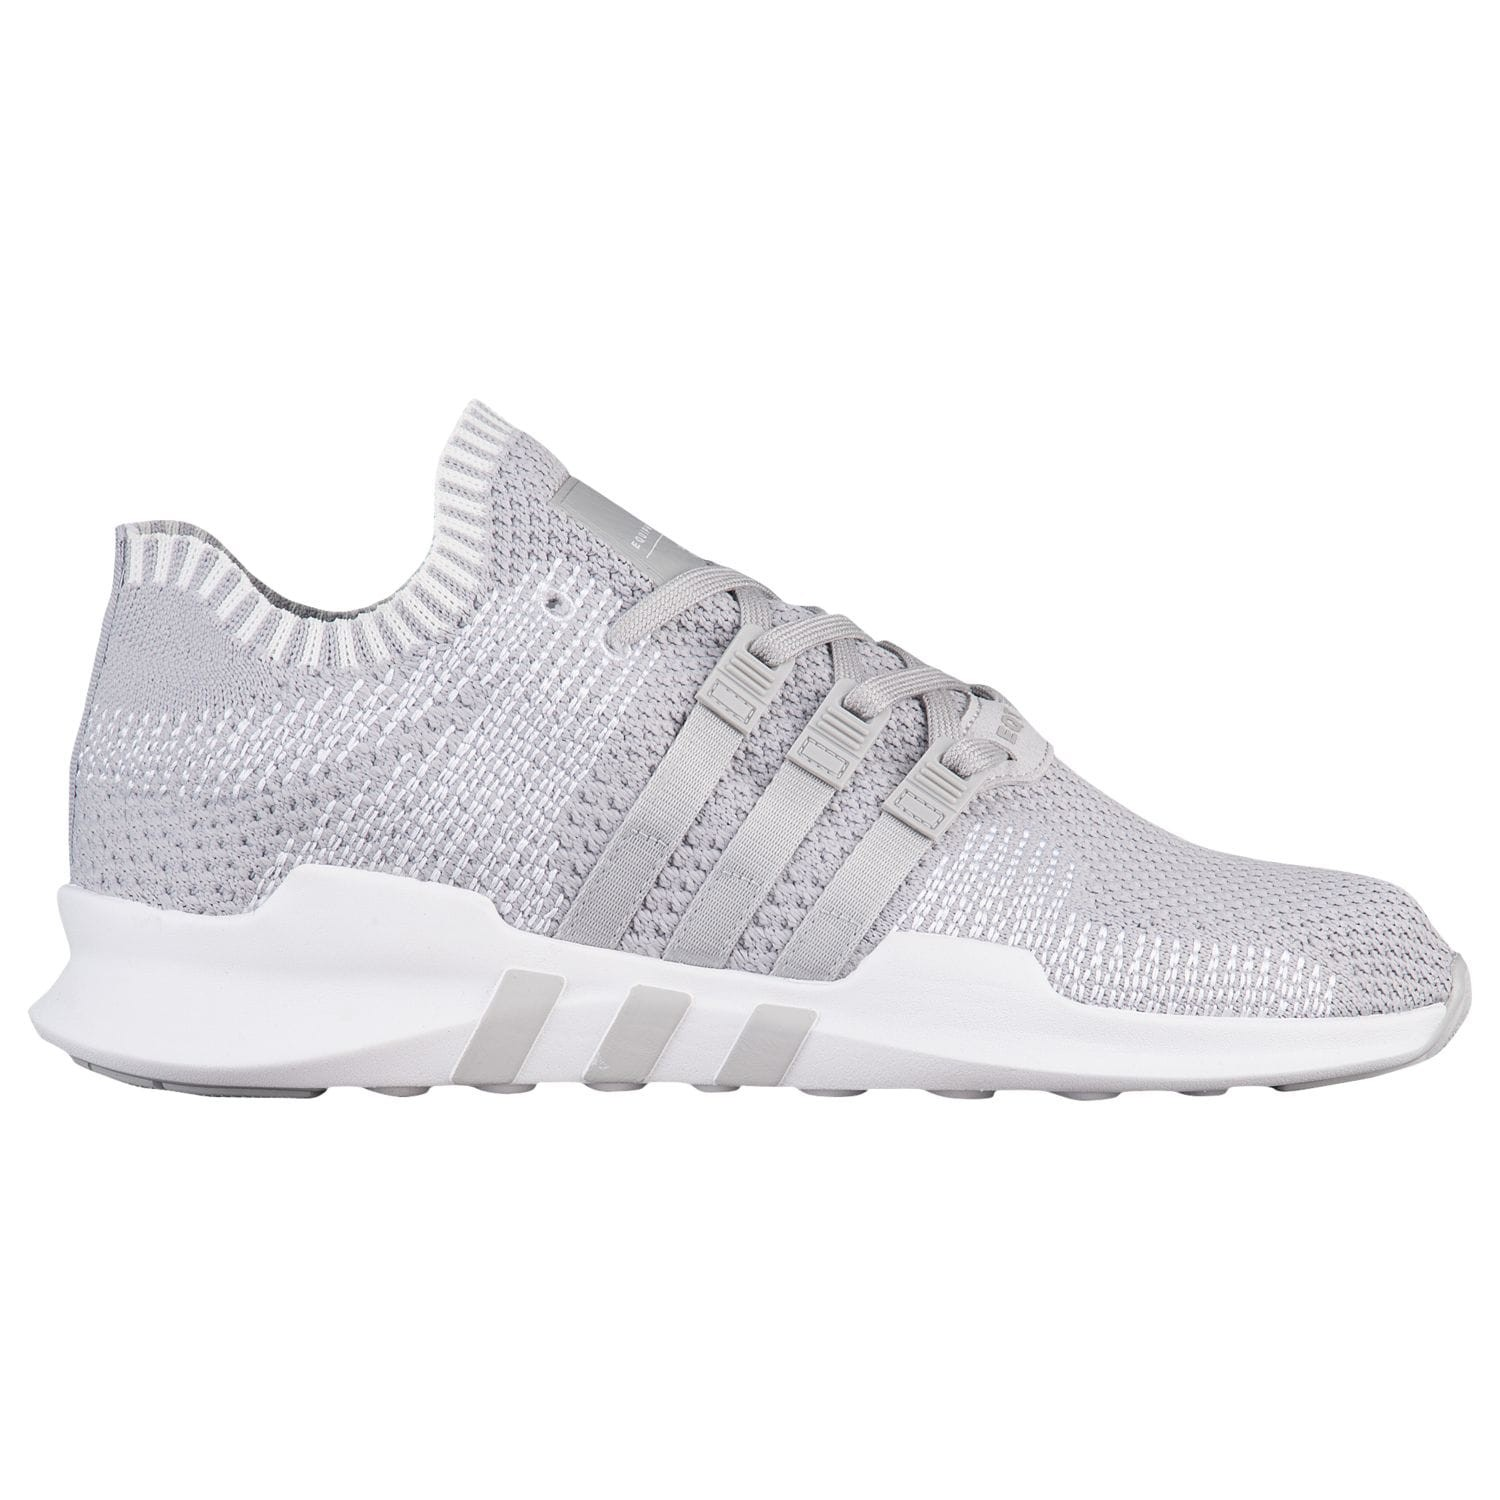 adidas Originals EQT Support Adv Primeknit Skor BY9392 - Herr